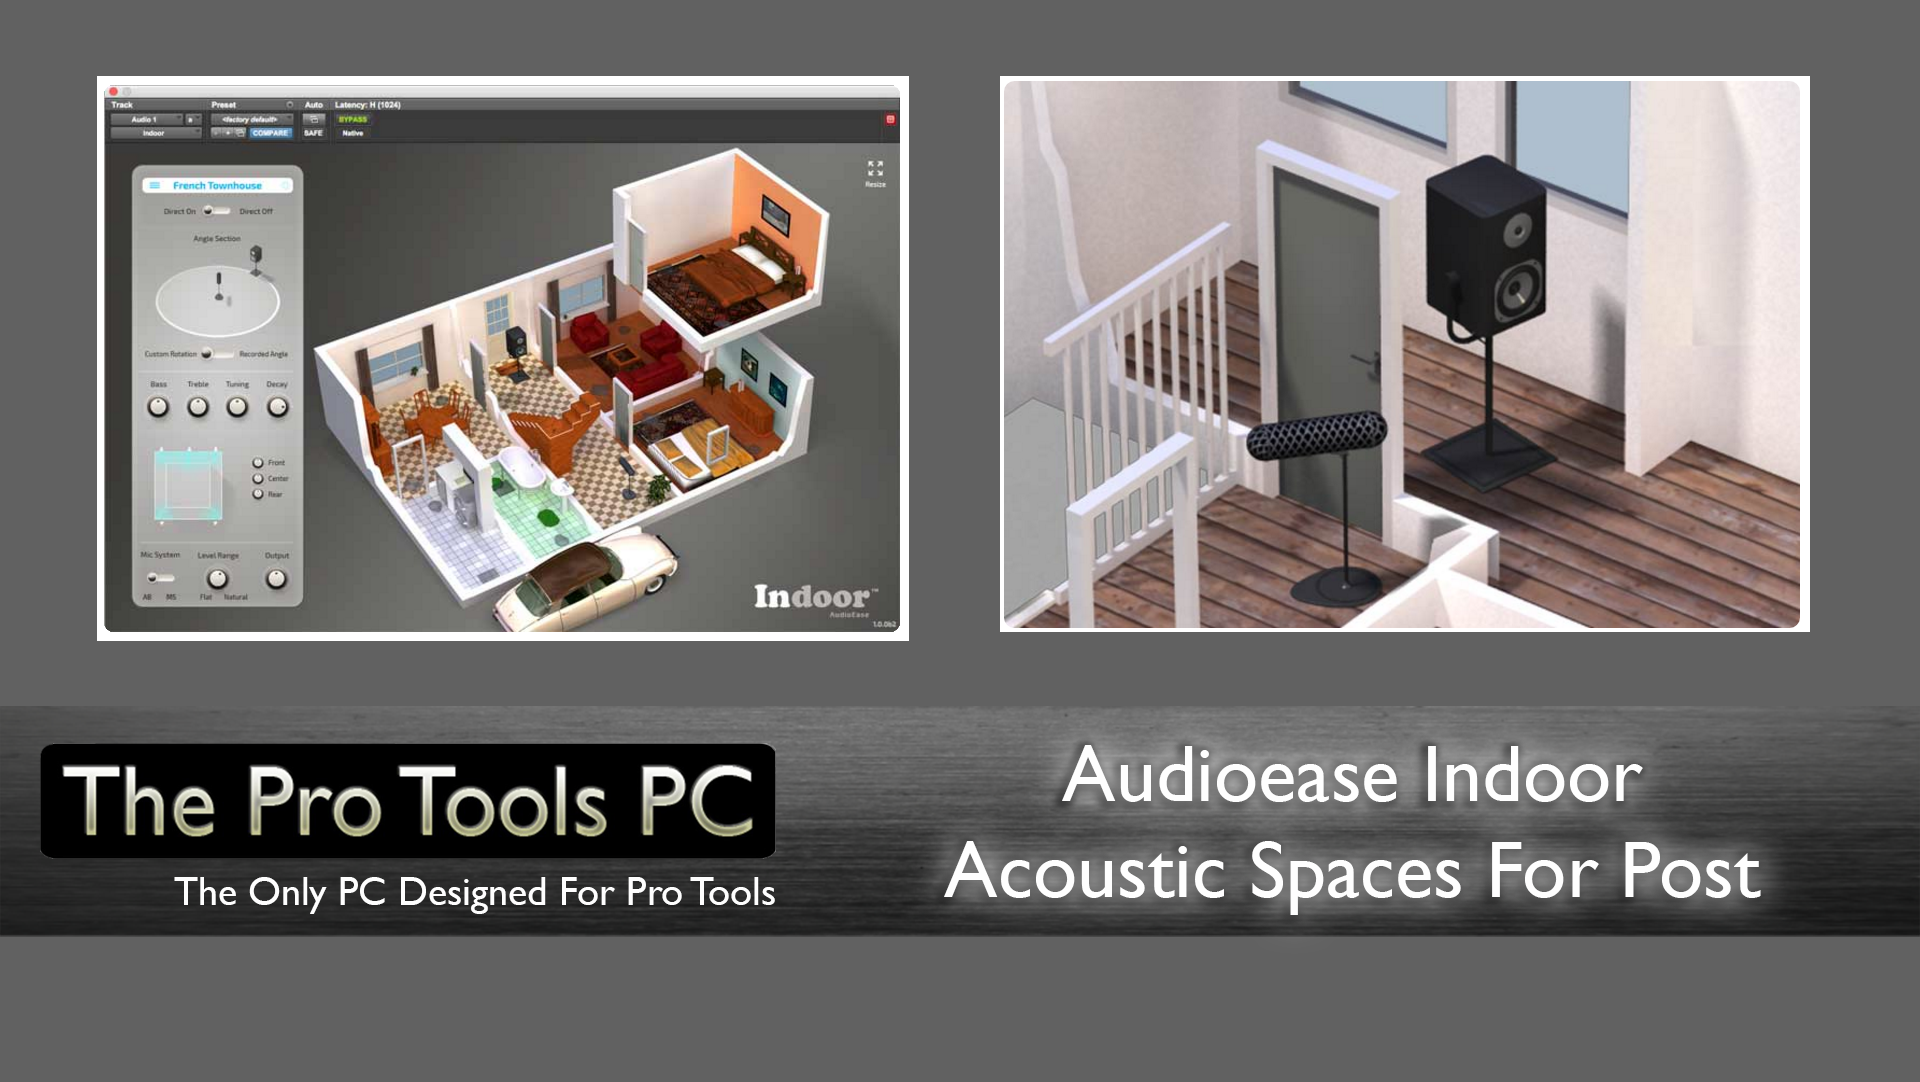 Audioease Indoor